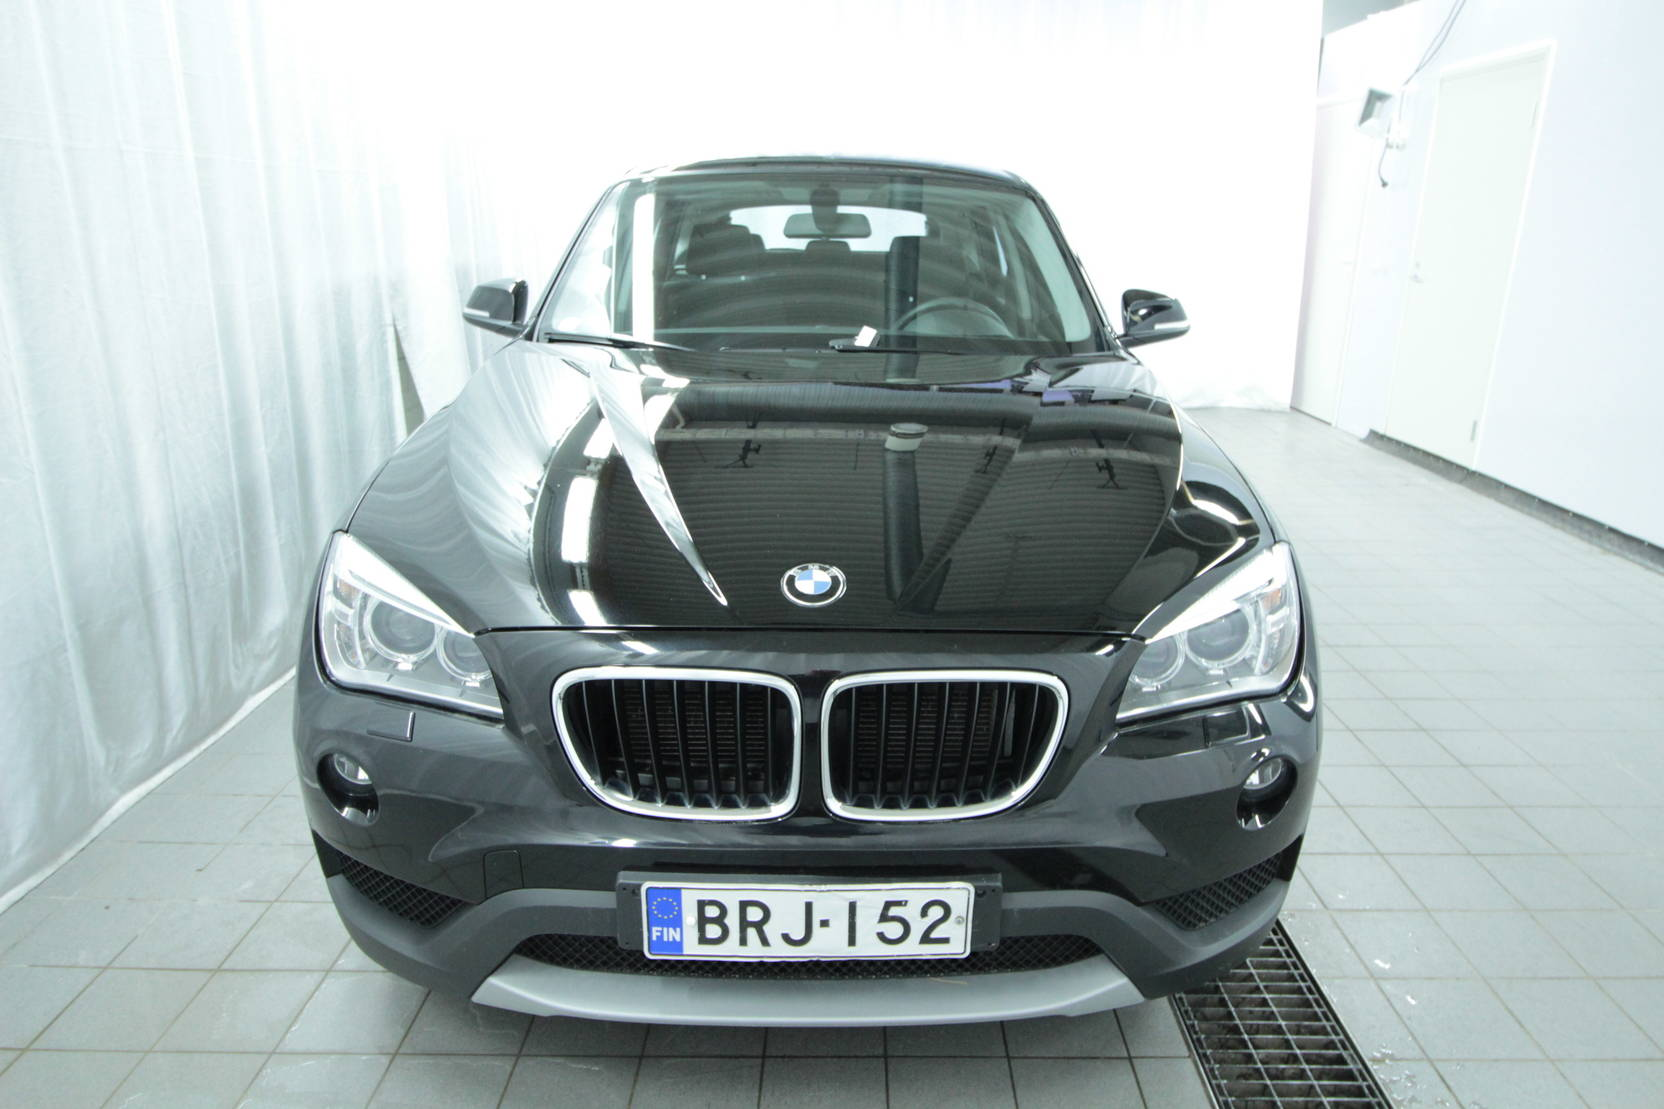 BMW X1 Sdrive18d Twinpower Turbo A Business At detail2